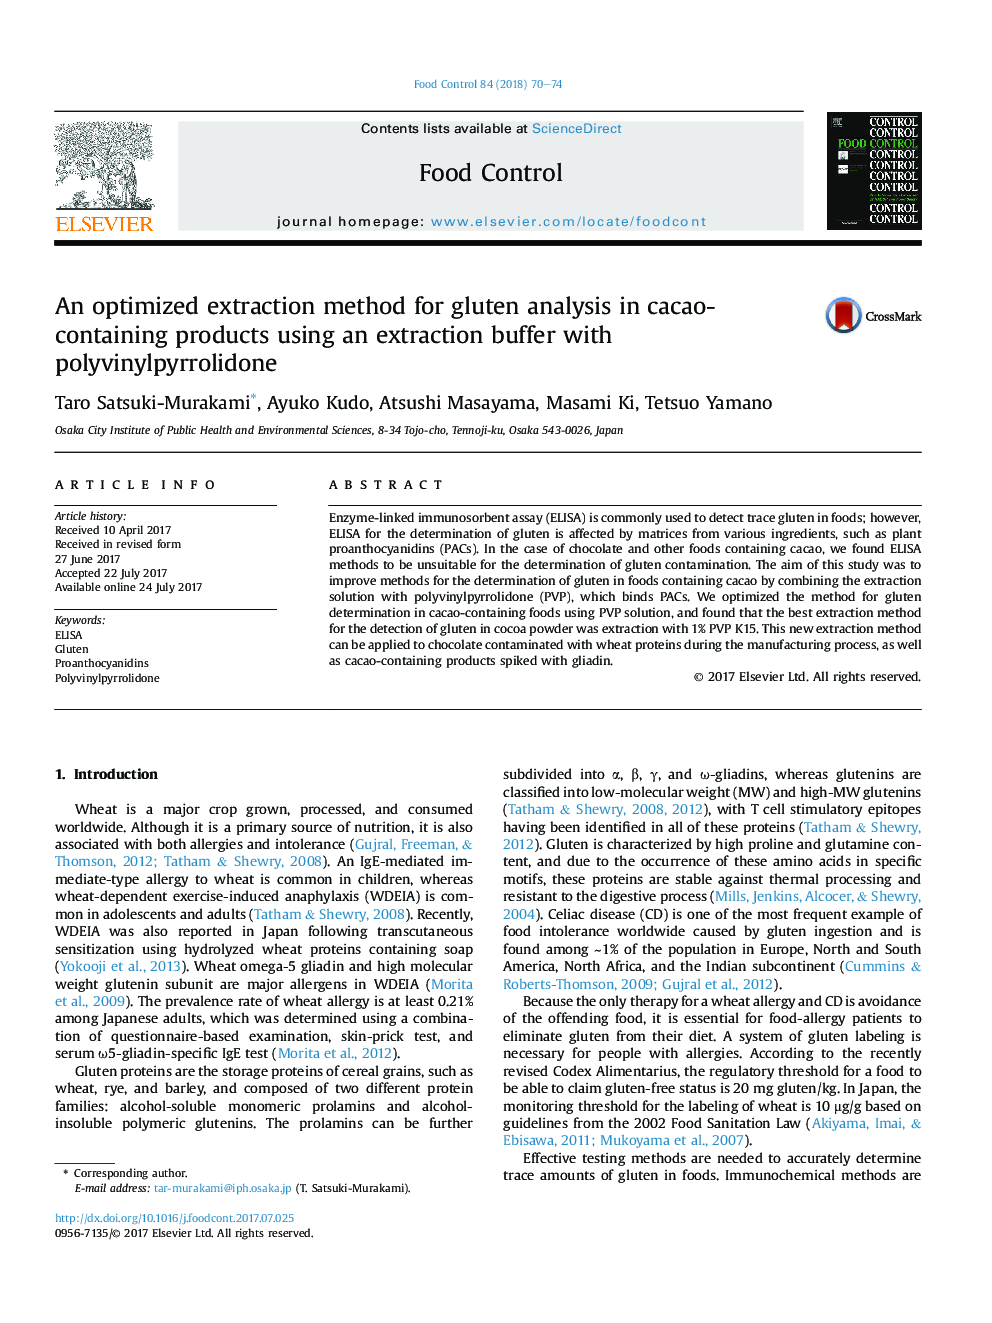 An optimized extraction method for gluten analysis in cacao-containing products using an extraction buffer with polyvinylpyrrolidone